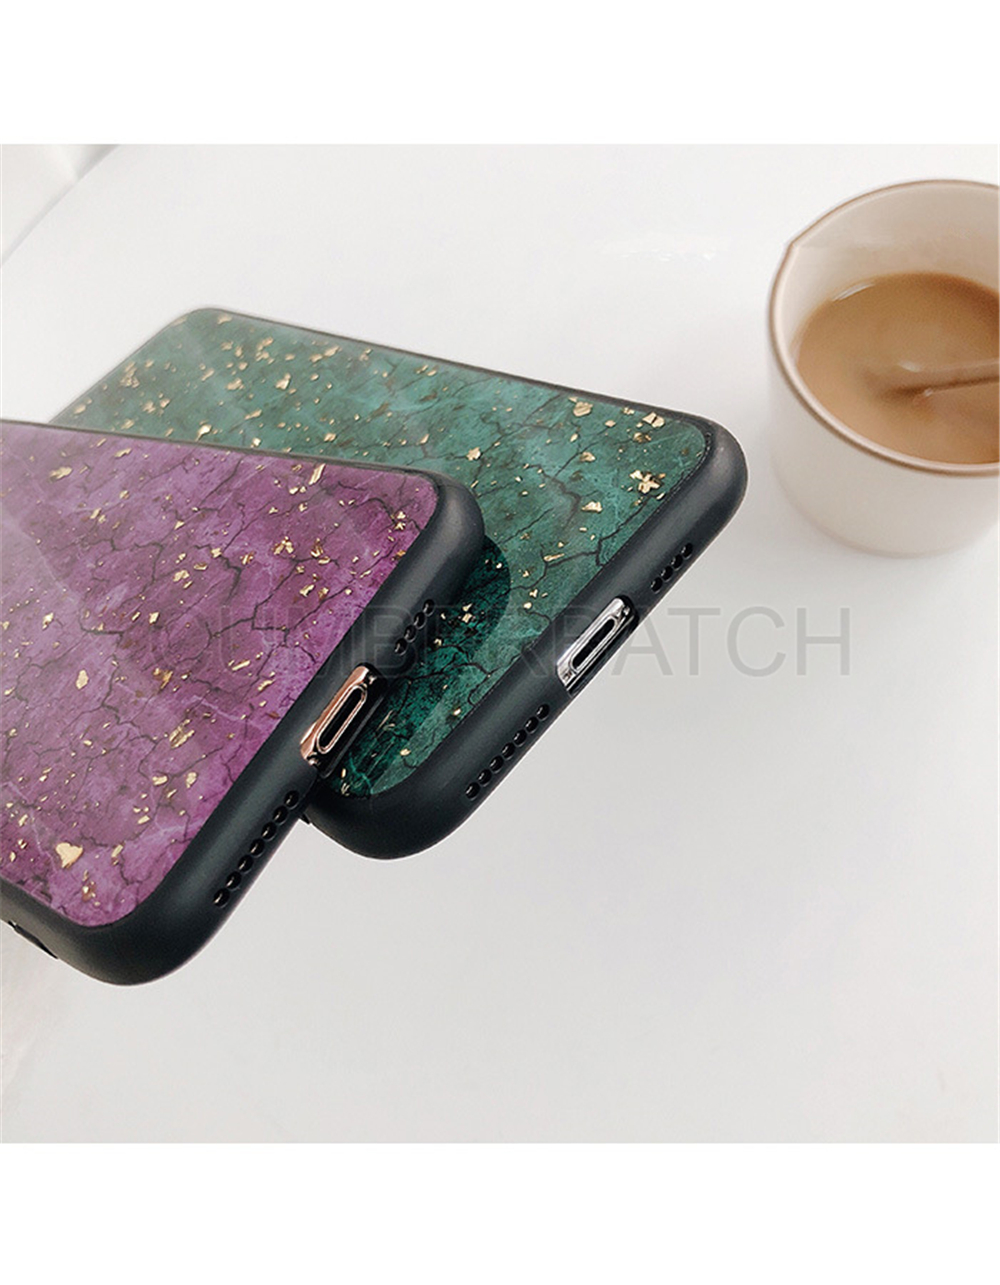 Luxury Green Diamond Crack Marble Phone Case For iphone 7 8 6 6s Plus Bee With Wing Funda cover for iphone XS MAX XR X back   (10)